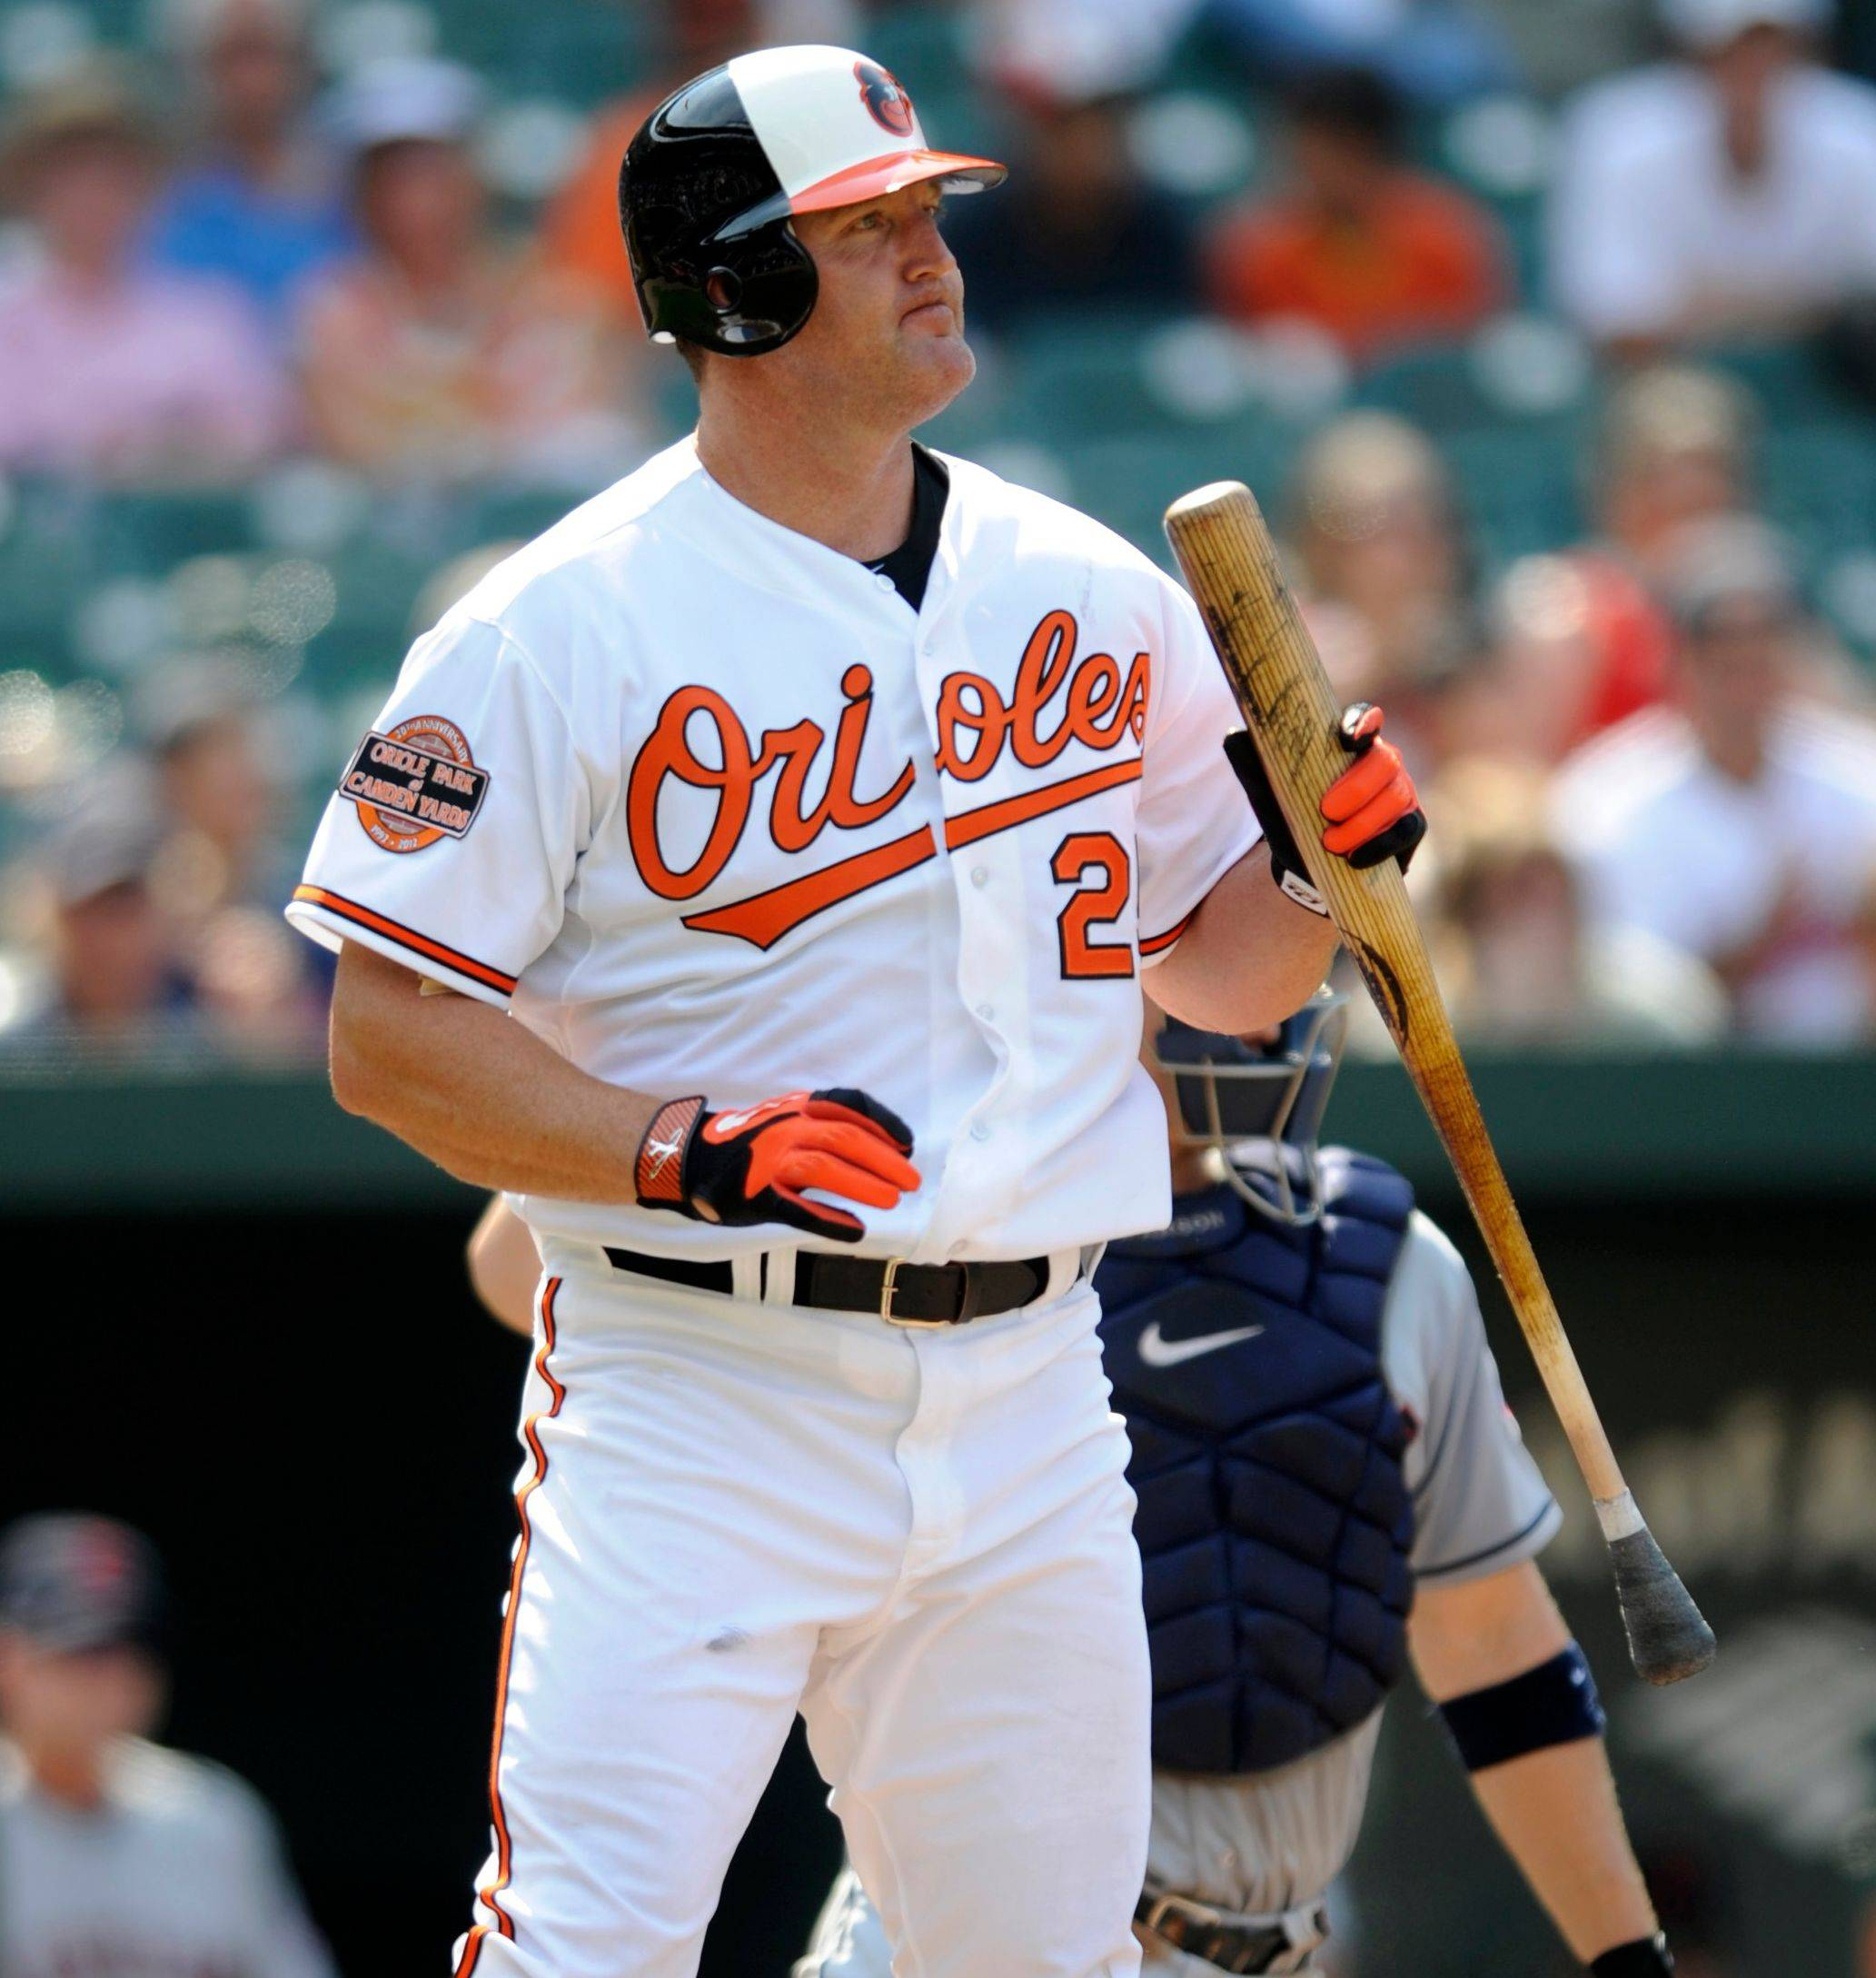 The newest member of the Baltimore Orioles, designated hitter Jim Thome, went 0-for-4 Sunday against the Cleveland Indians. After departing the Sox, Thome has played for the Dodgers, Twins, Phillies and now the Orioles. Mike North believes Thome will have a better second half than Adam Dunn of the White Sox.